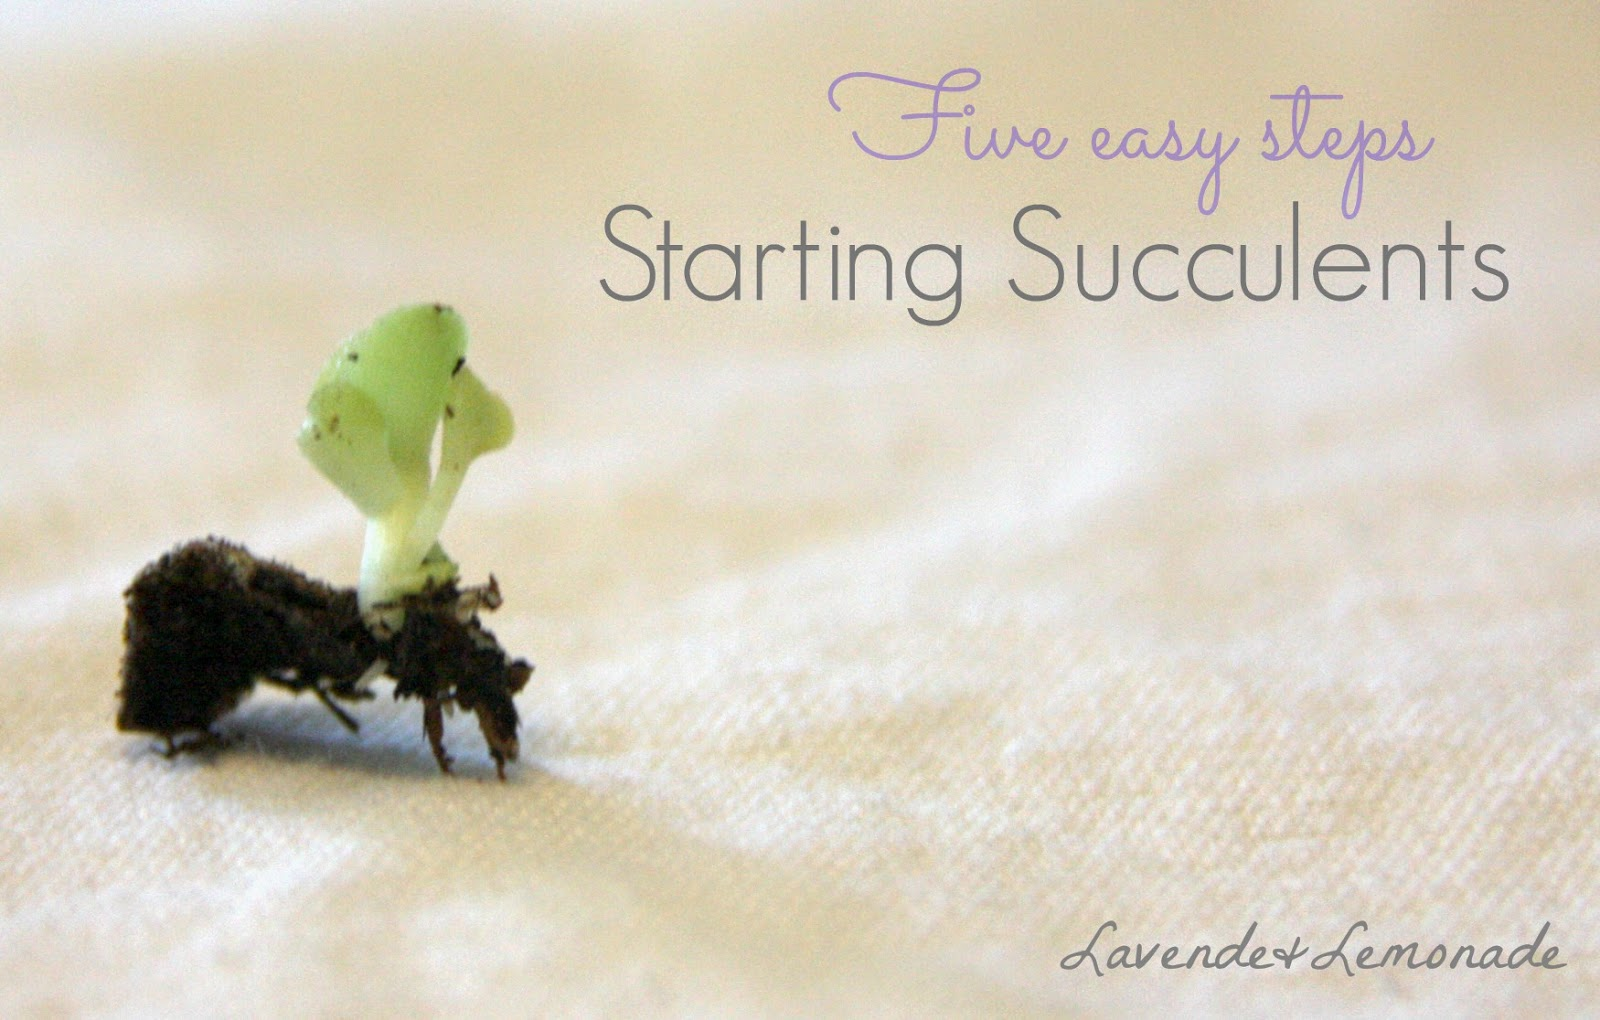 Starting Succulent plants is so simple with these 5 easy steps from Lavende & Lemonade